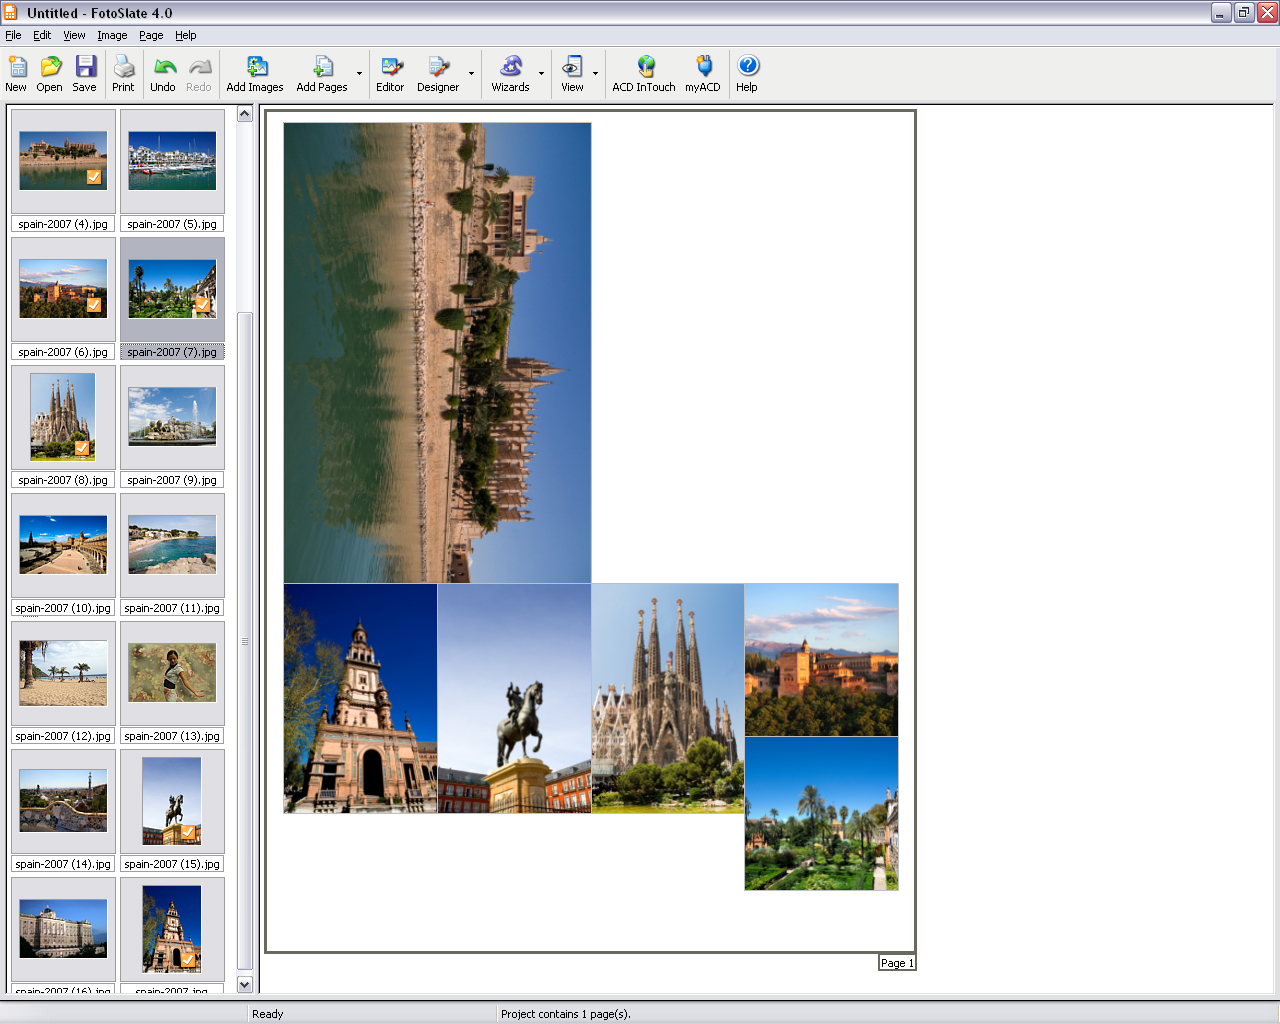 Acd fotoslate 3.0 photo printing software download Contact Information: United Arab Emirates - WIPO